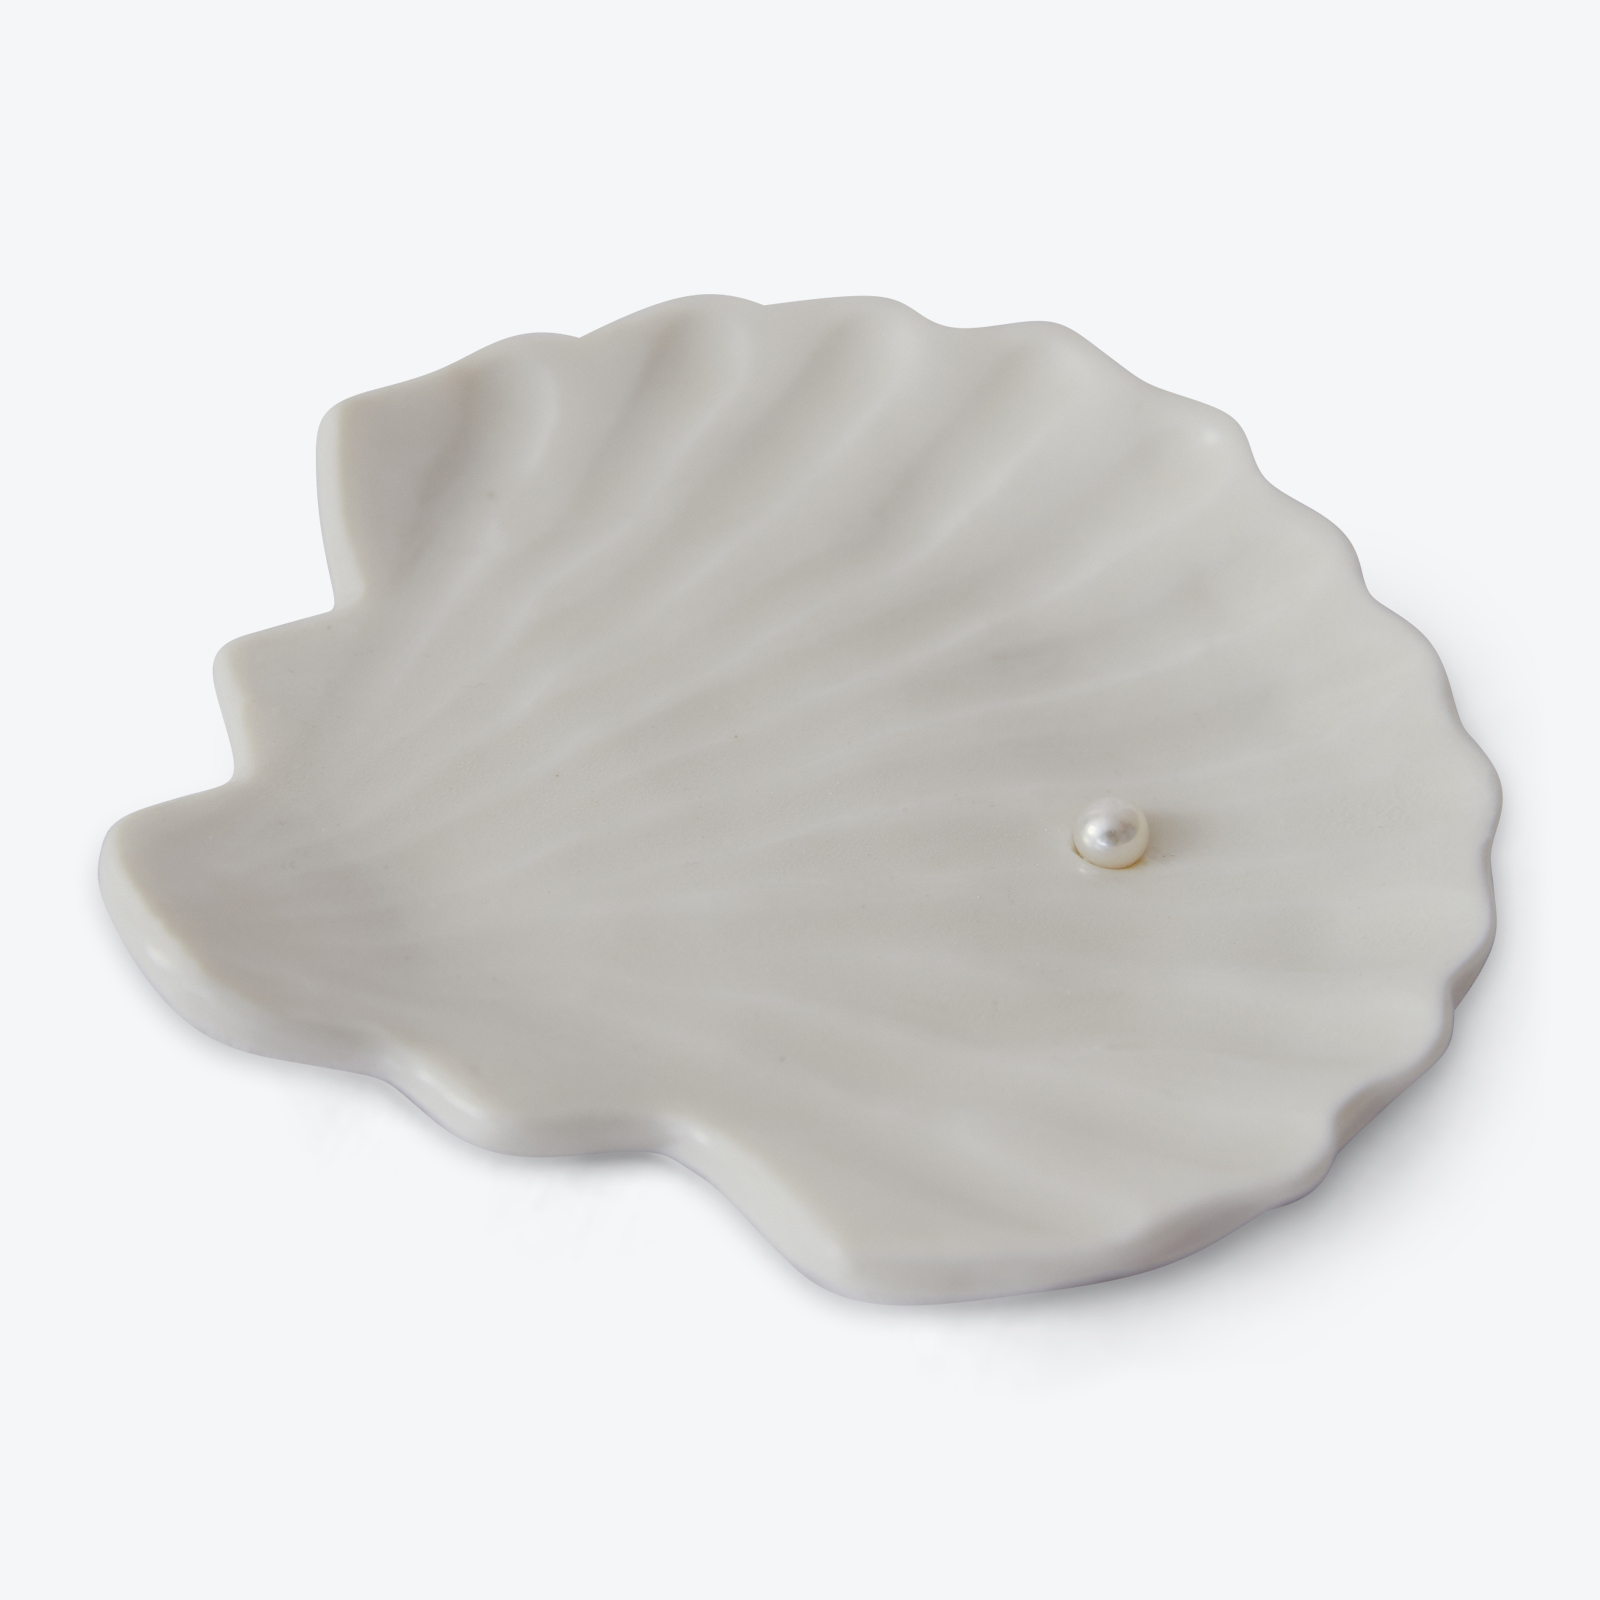 Shell Dish With Pearl In Porcelain With Freshwater Pearl By Gretel Corrie 01.jpg